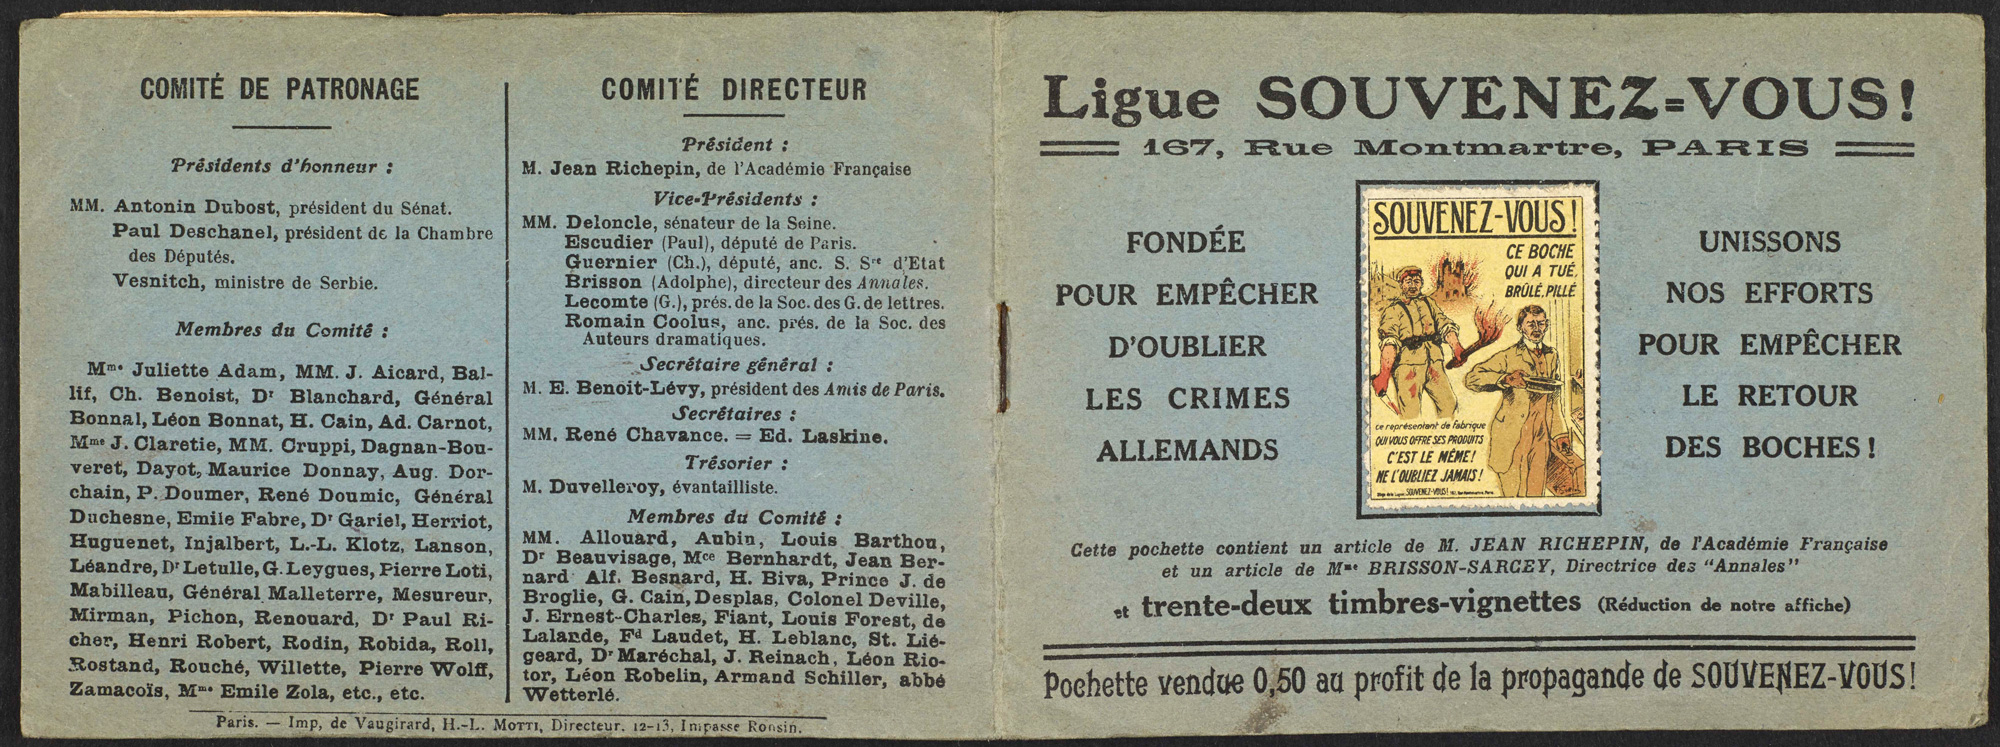 A booklet and stamps produced by the French league, Souvenez-vous (French for 'remember'), which aimed to perpetuate the memory of German crimes after the war.